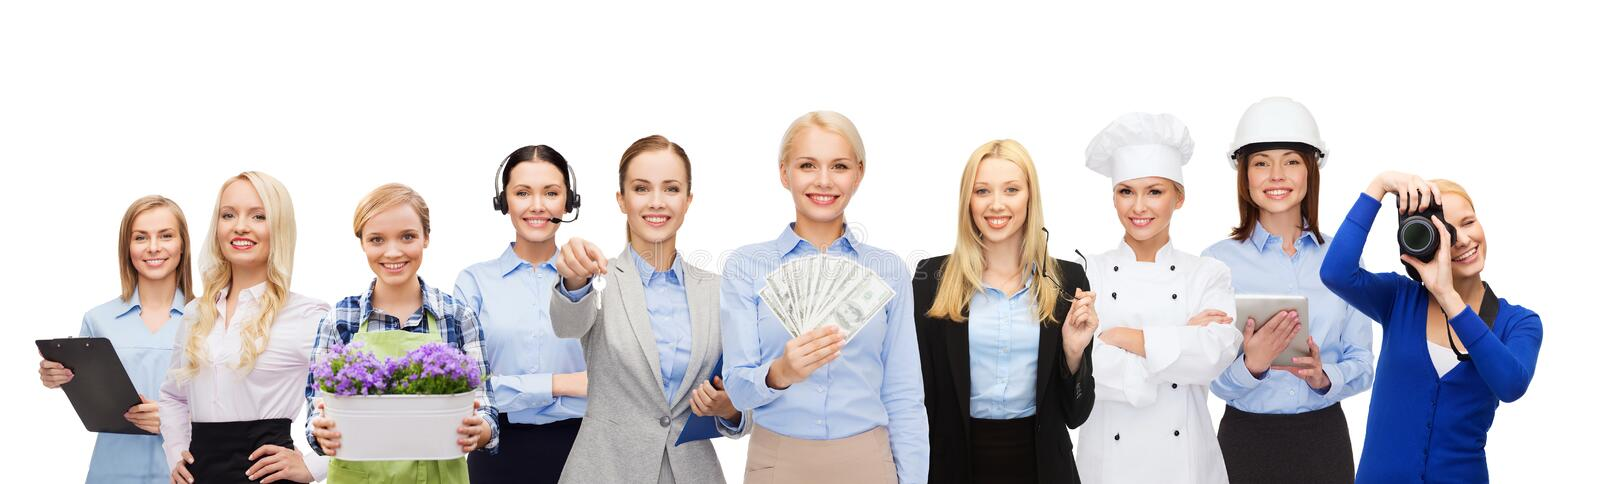 Woman holding money over professional workers stock photo